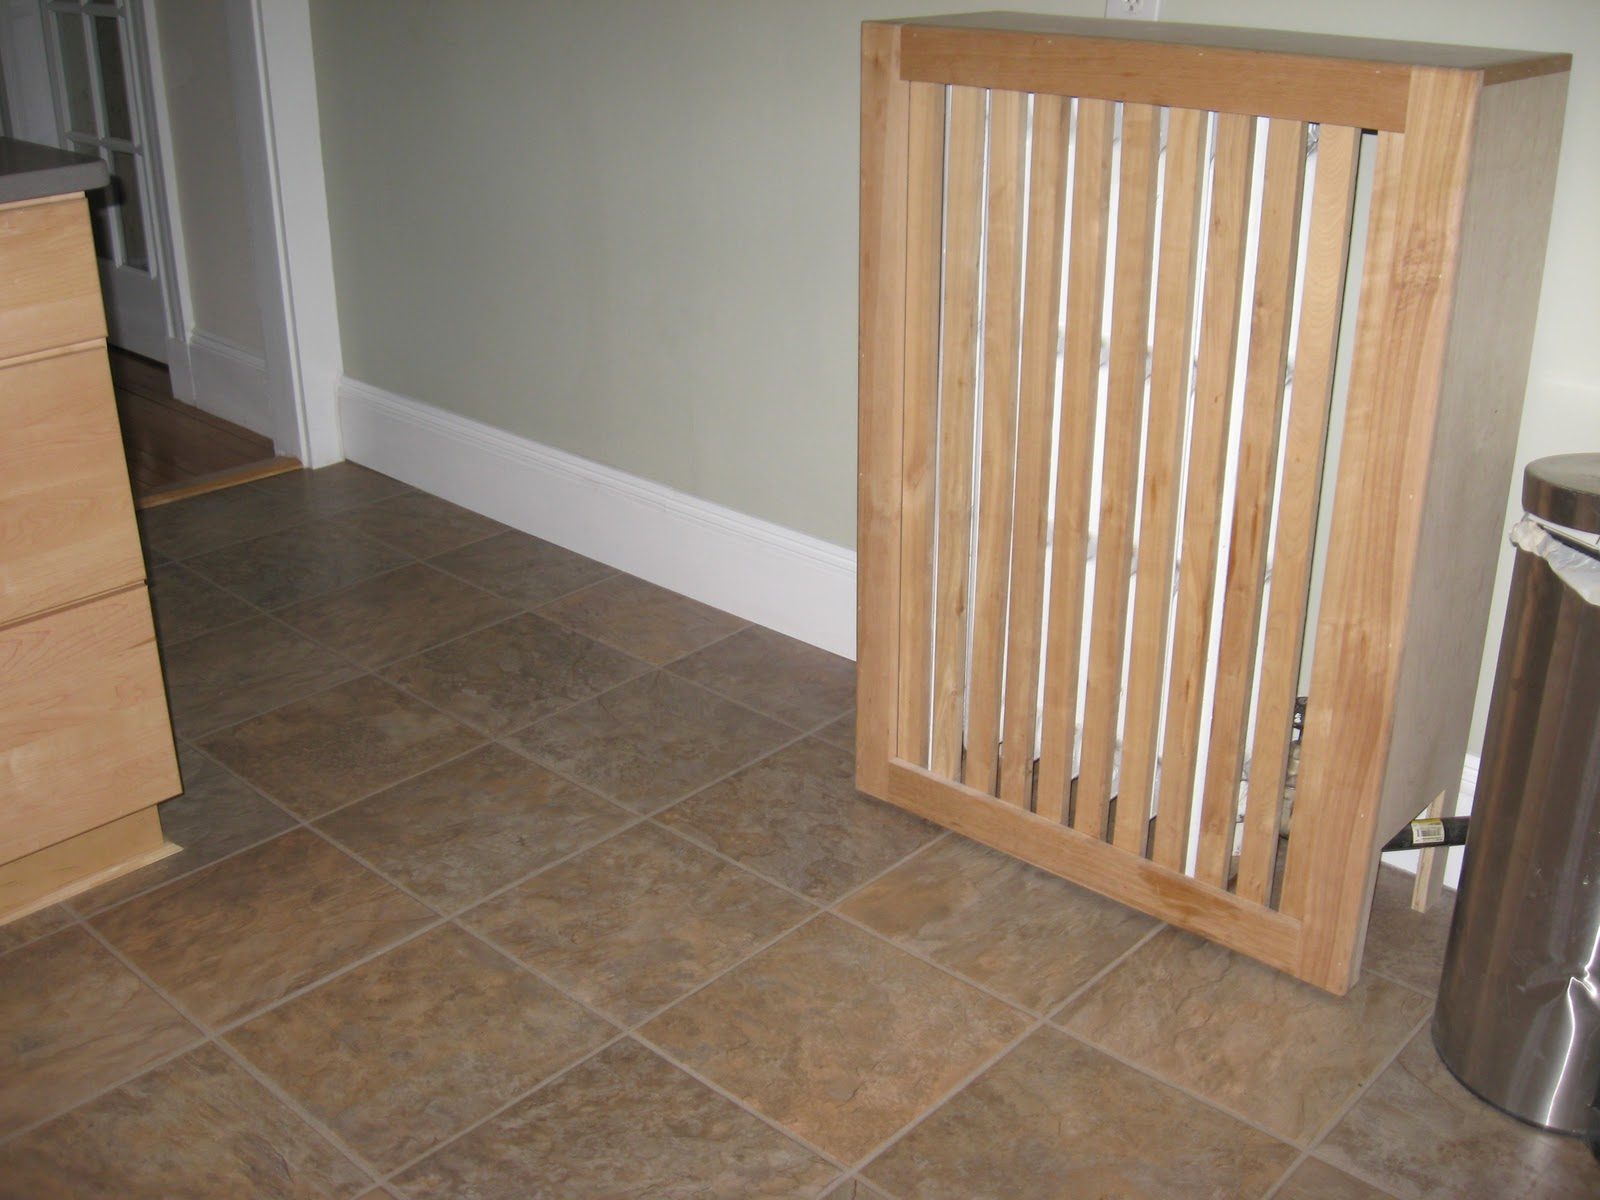 The Baseboards A 1x4 With Decorative Molding On Top 26